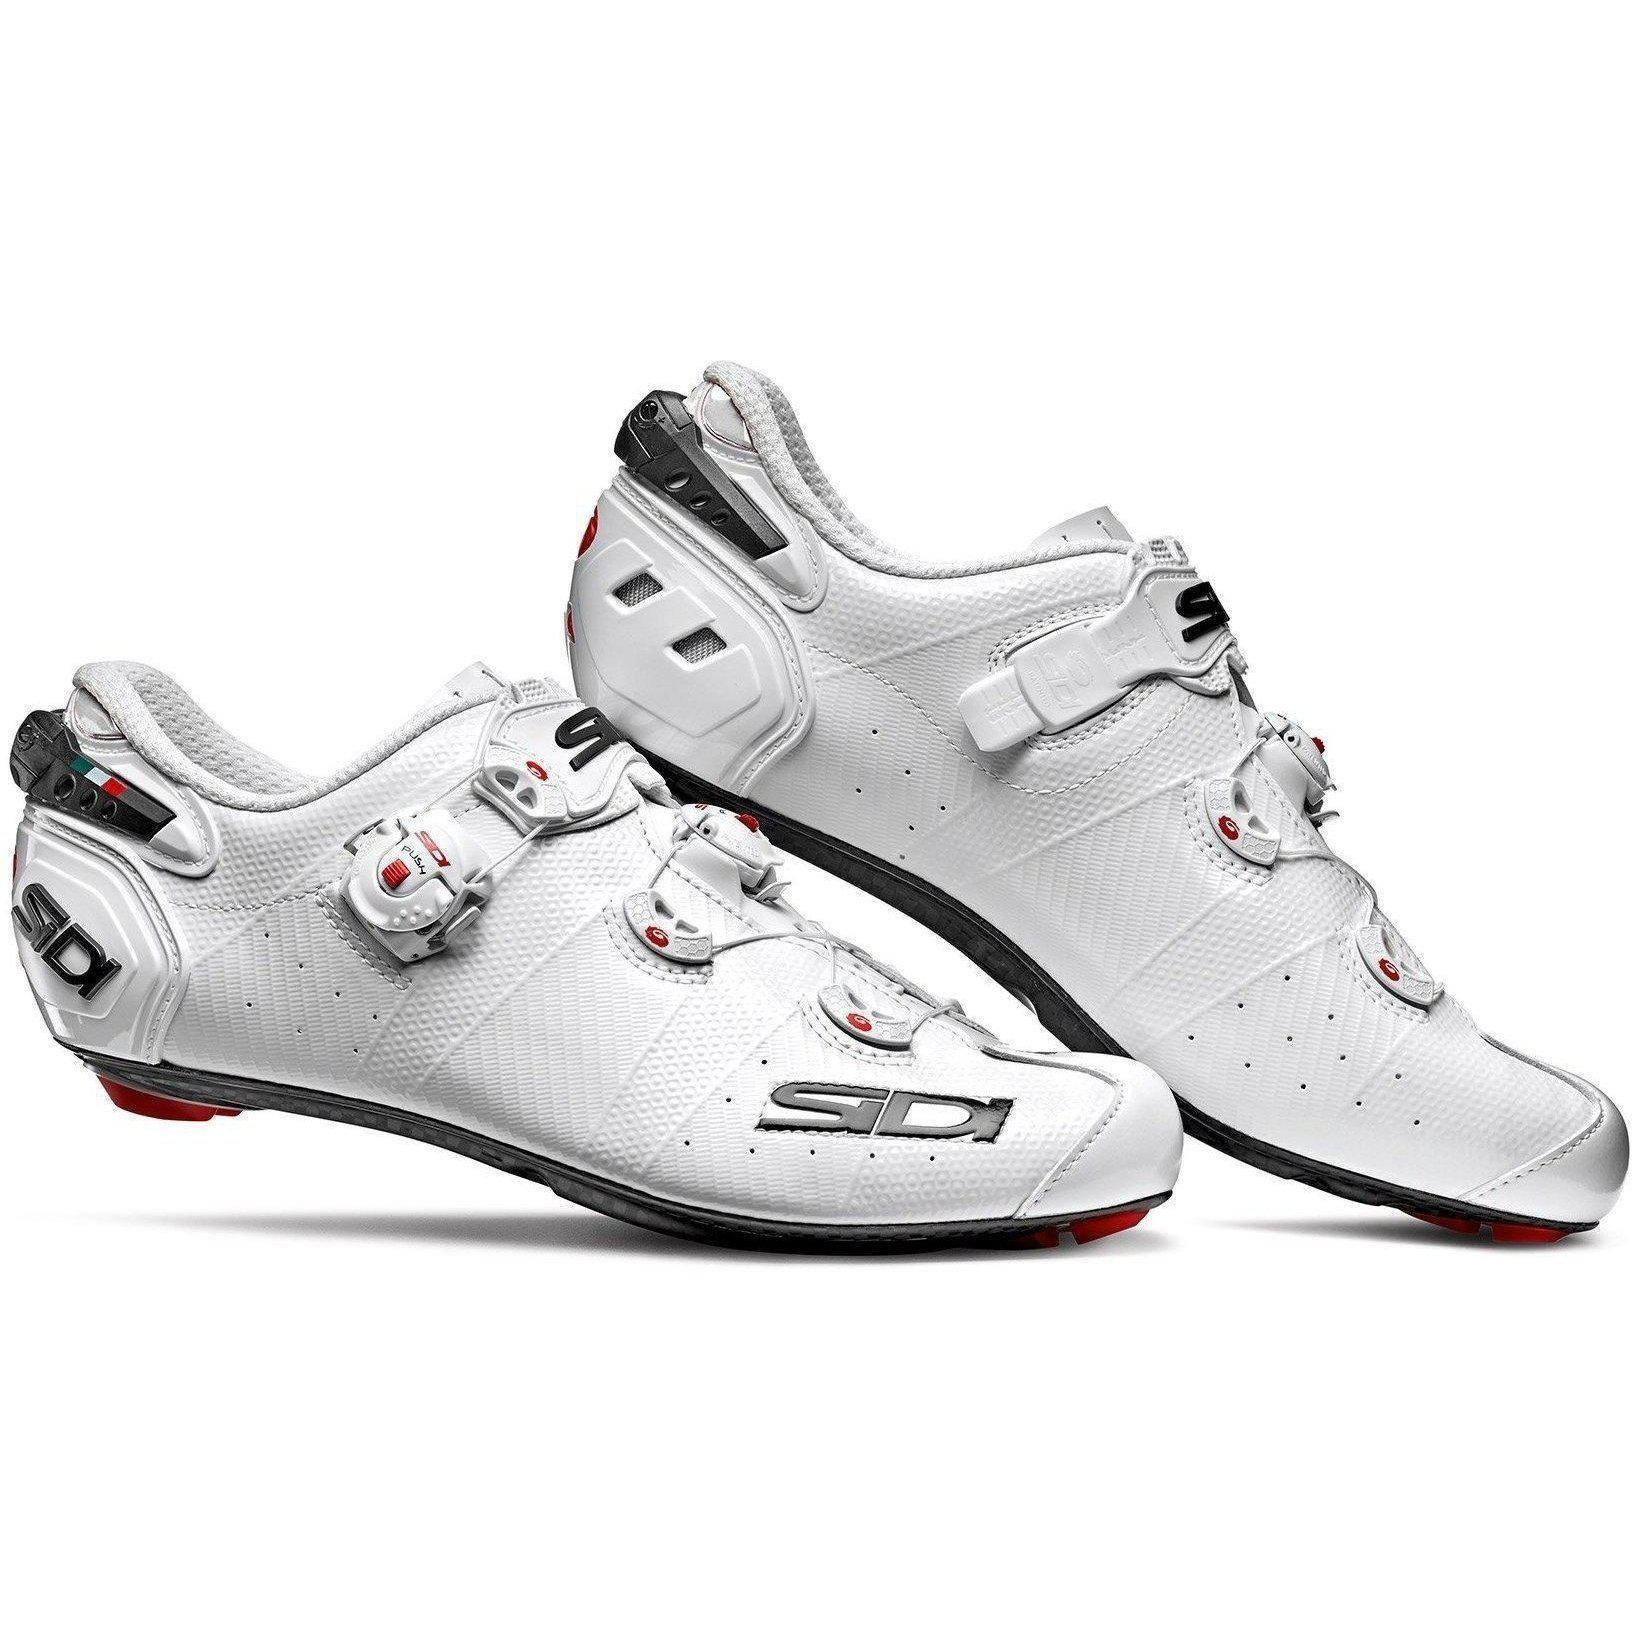 Sidi-Sidi Wire 2 Carbon Women's Road Shoes-White/White-38-SIWIRE2CWBIBI38-saddleback-elite-performance-cycling